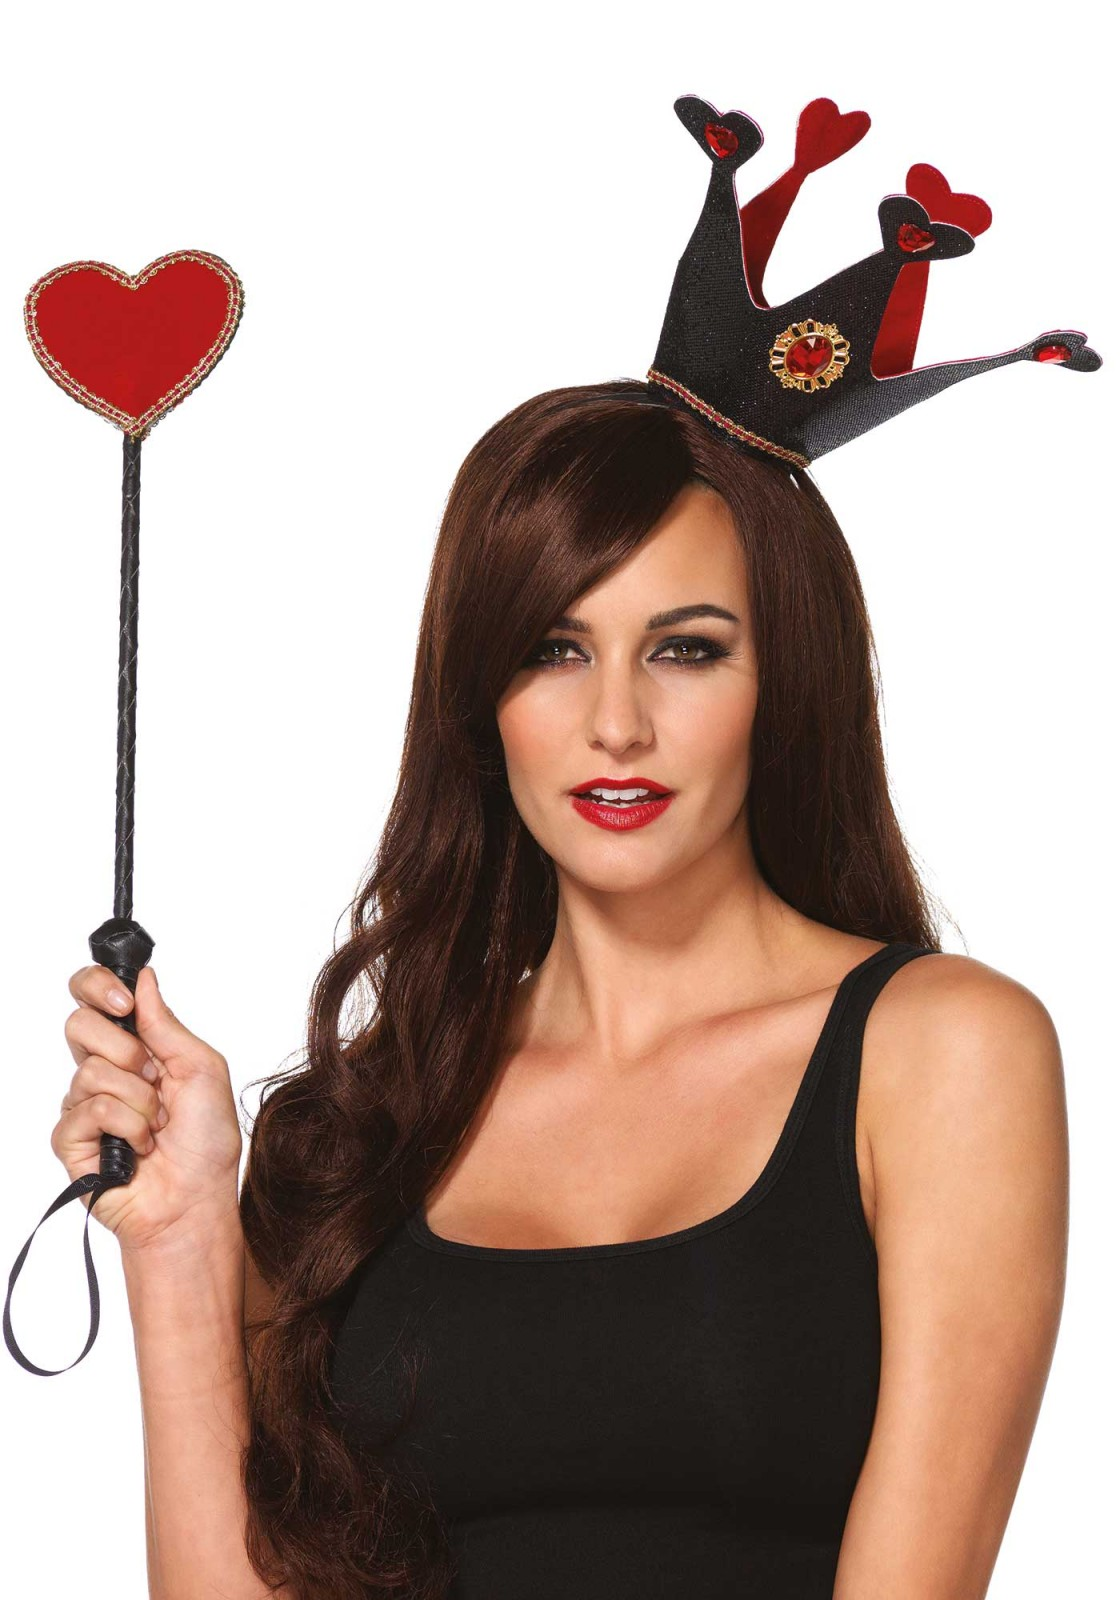 Get your queen of hearts look with this royal crown headband and heart scepter.